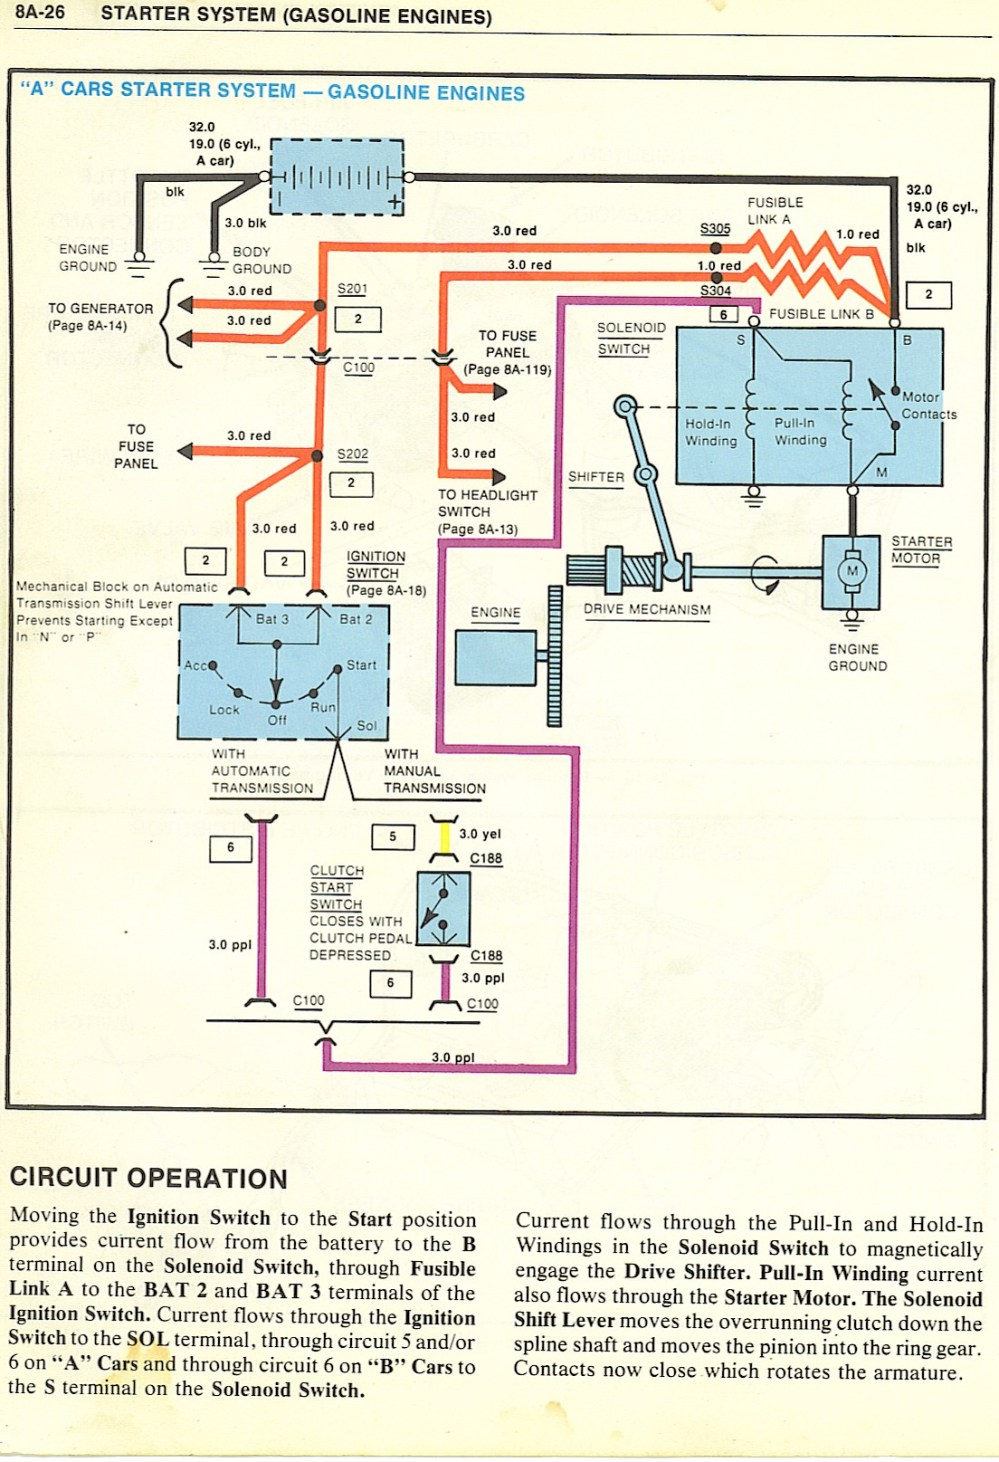 medium resolution of 1980 chevy starter wiring diagram wiring diagram schematics 1969 camaro starter wiring diagram of starter wiring on 1980 camaro